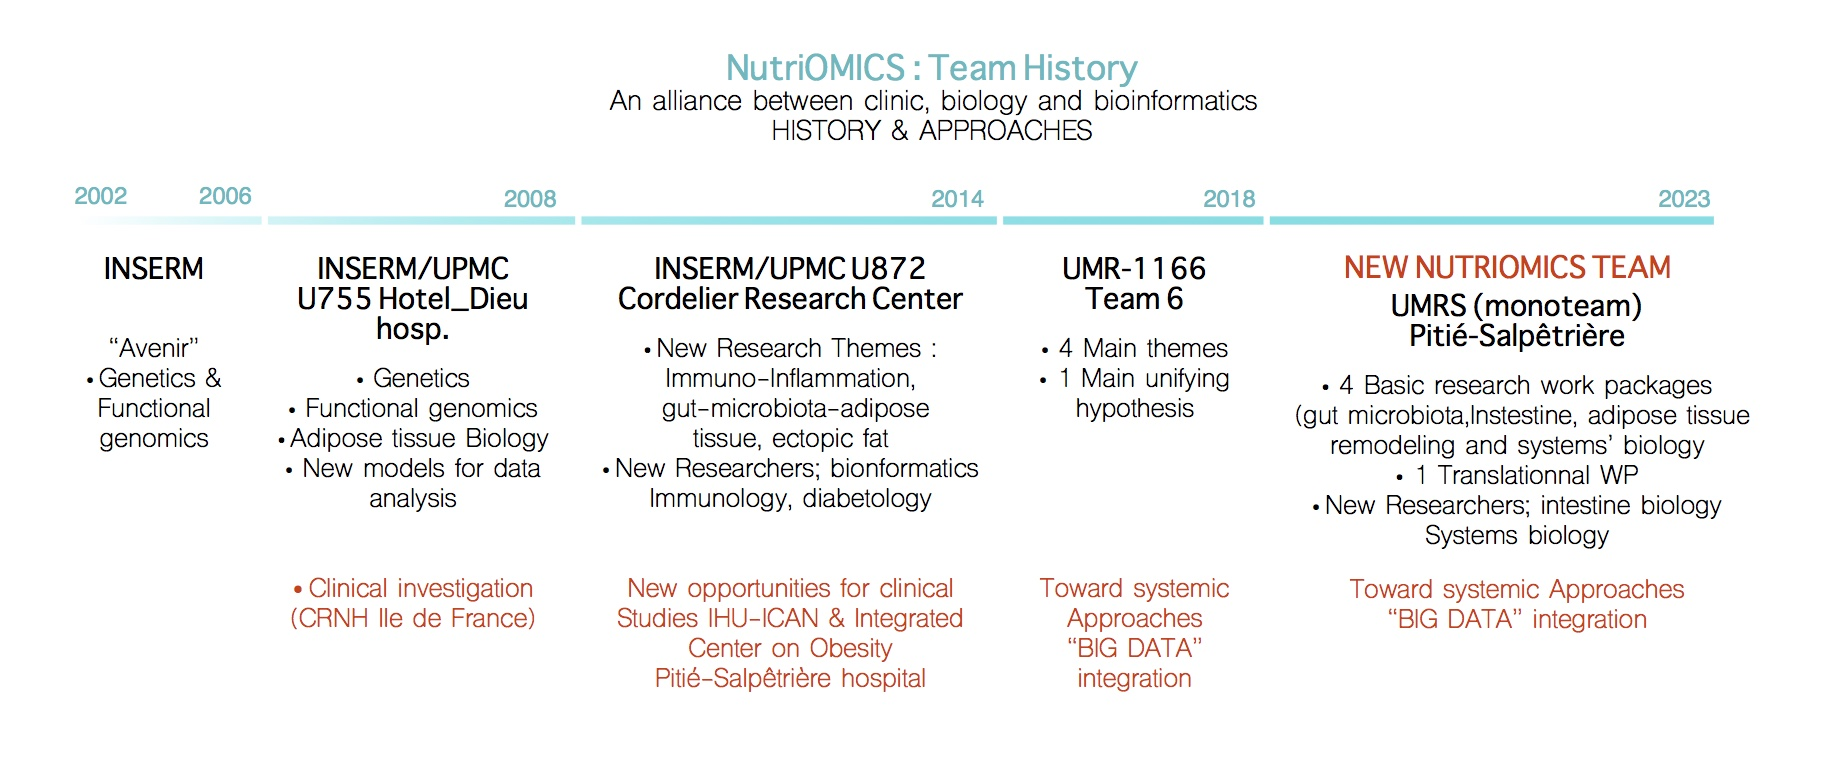 Nutriomics, Team history - Alliance between clinic, biology and bioinformatics